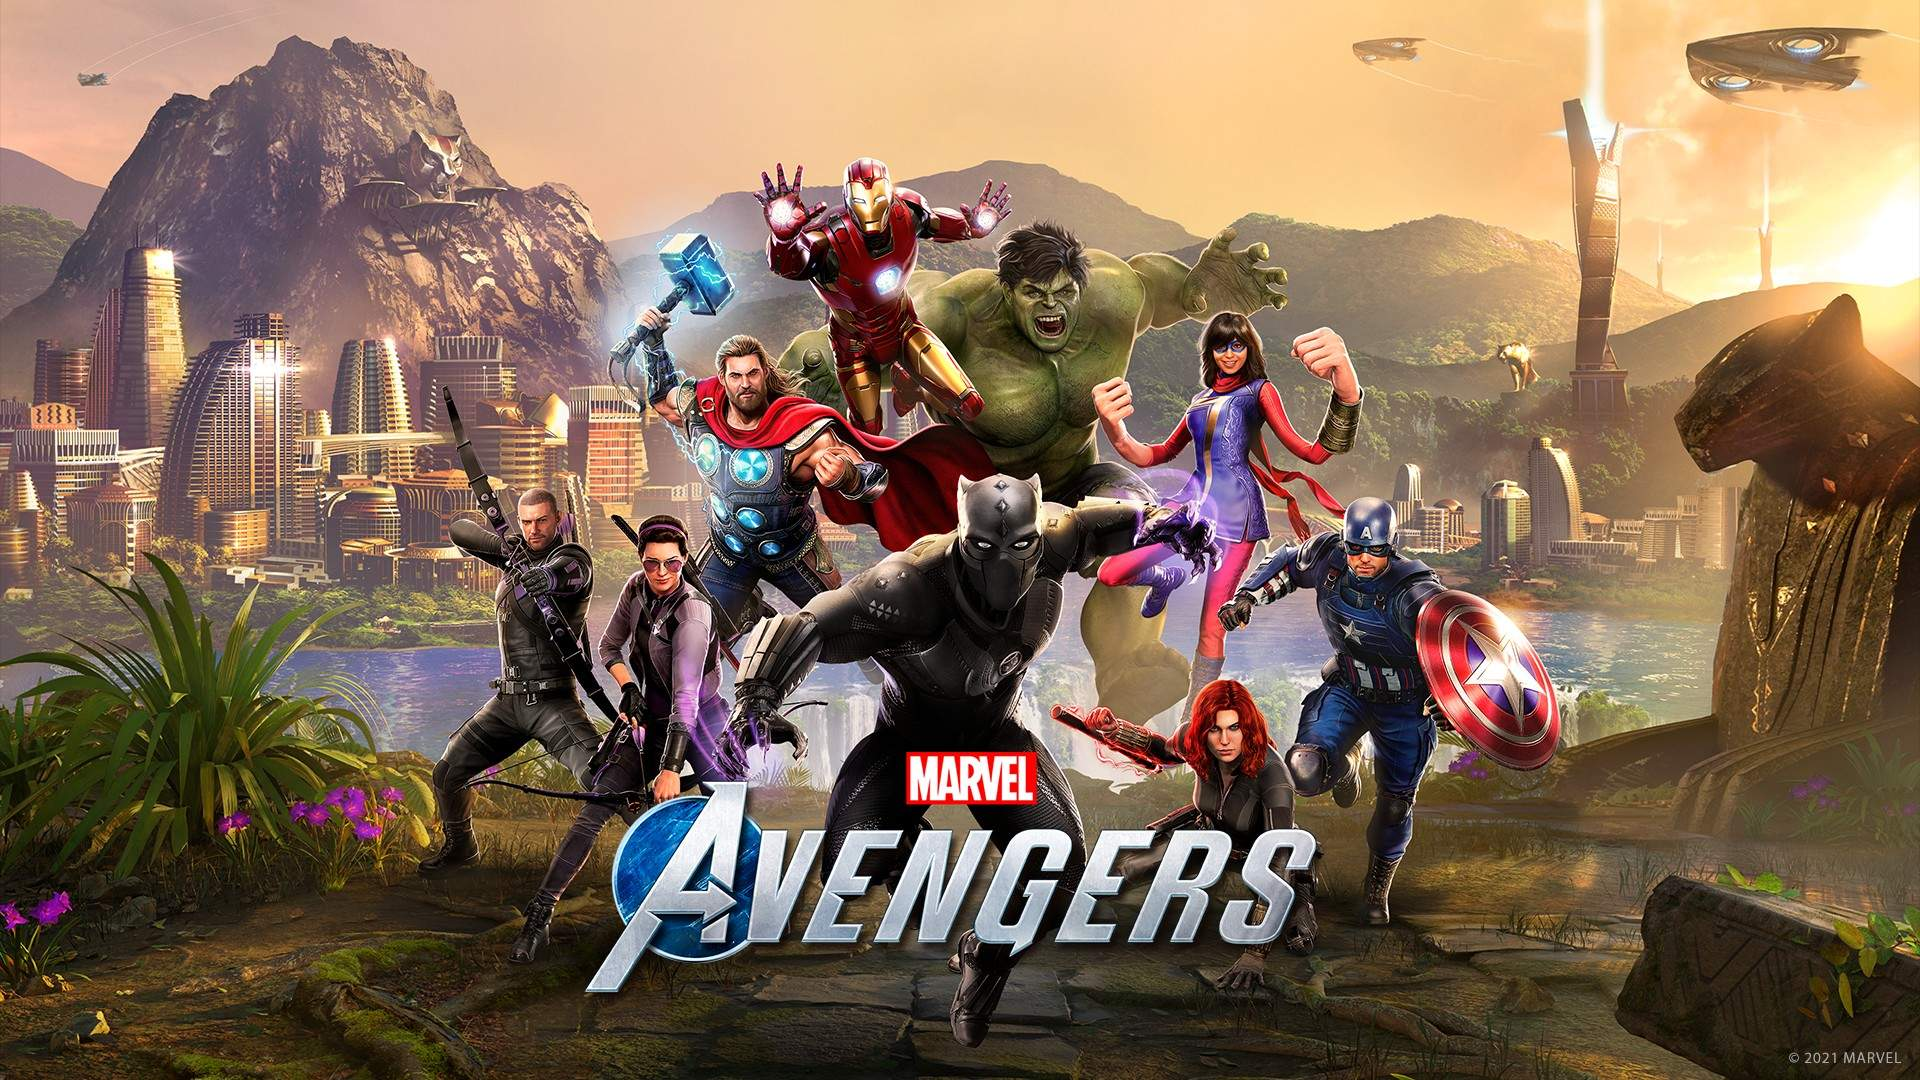 Xbox Game Pass is Adding Marvel's Avengers